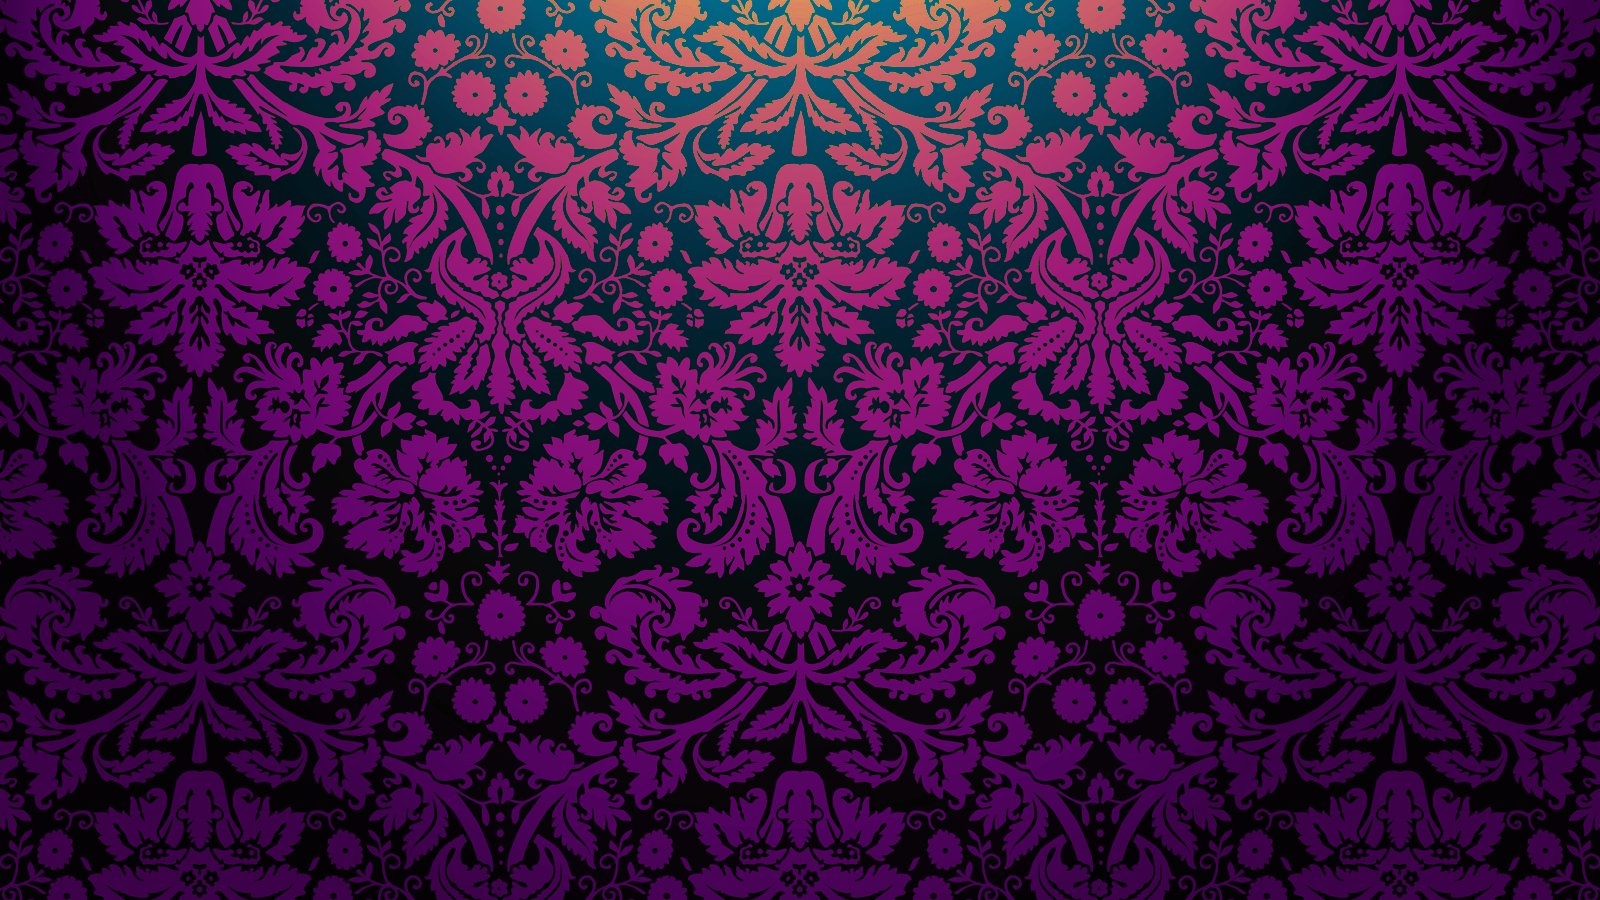 Pink Gold Damask Wallpaper 1600x1100 Download Resolutions Desktop 1600x900